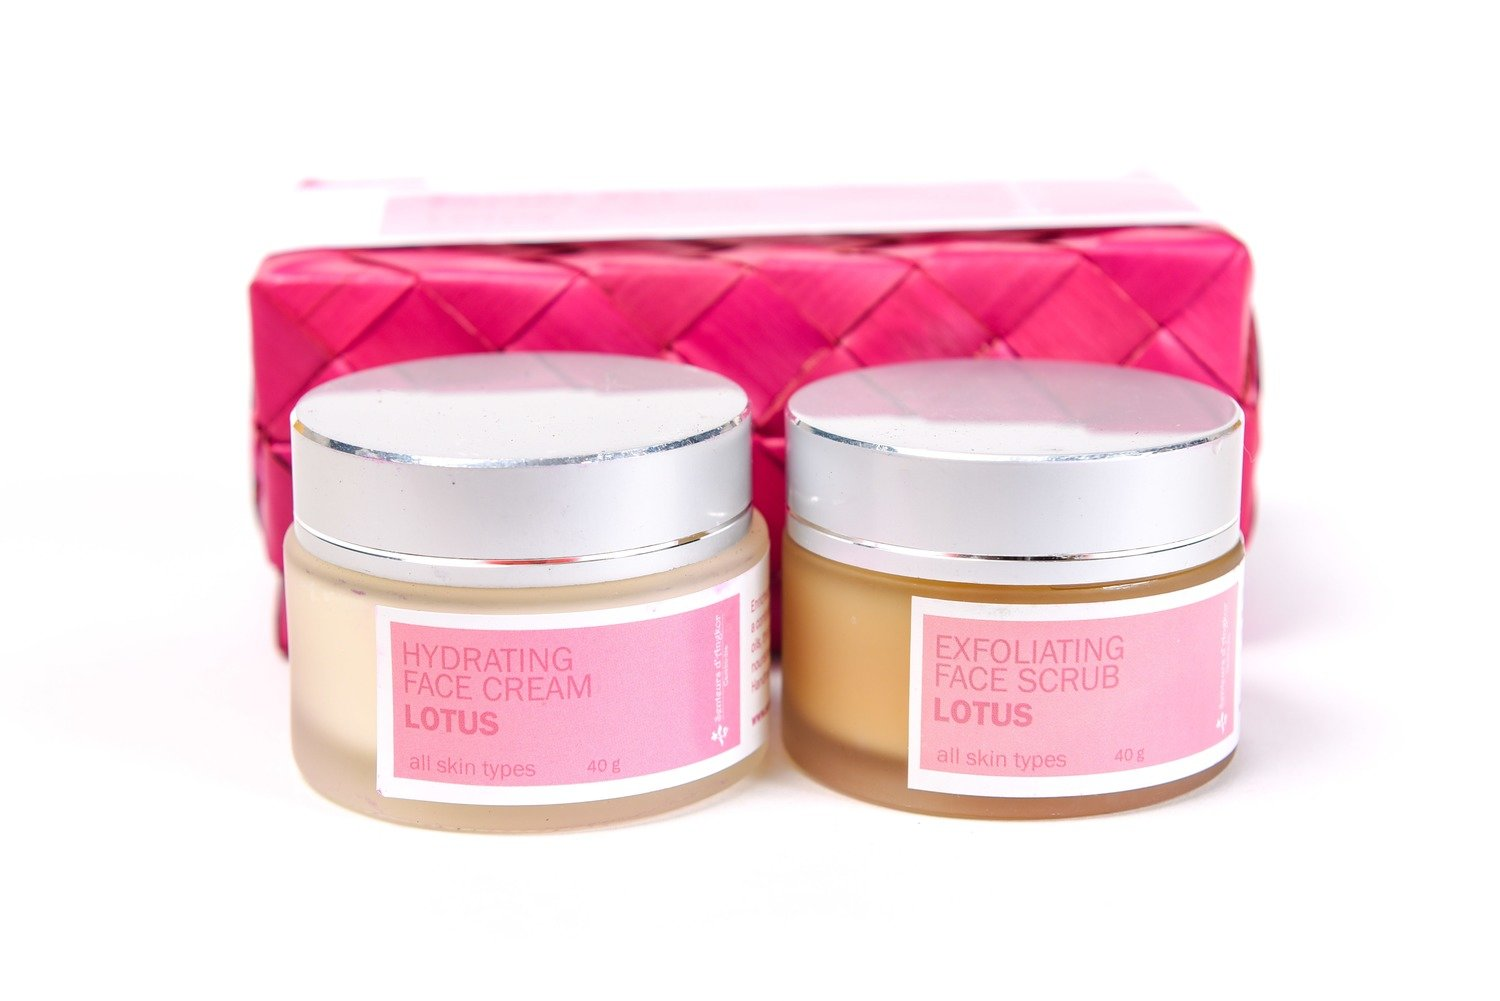 Set Facial Scrub and Cream 40g, Lotus